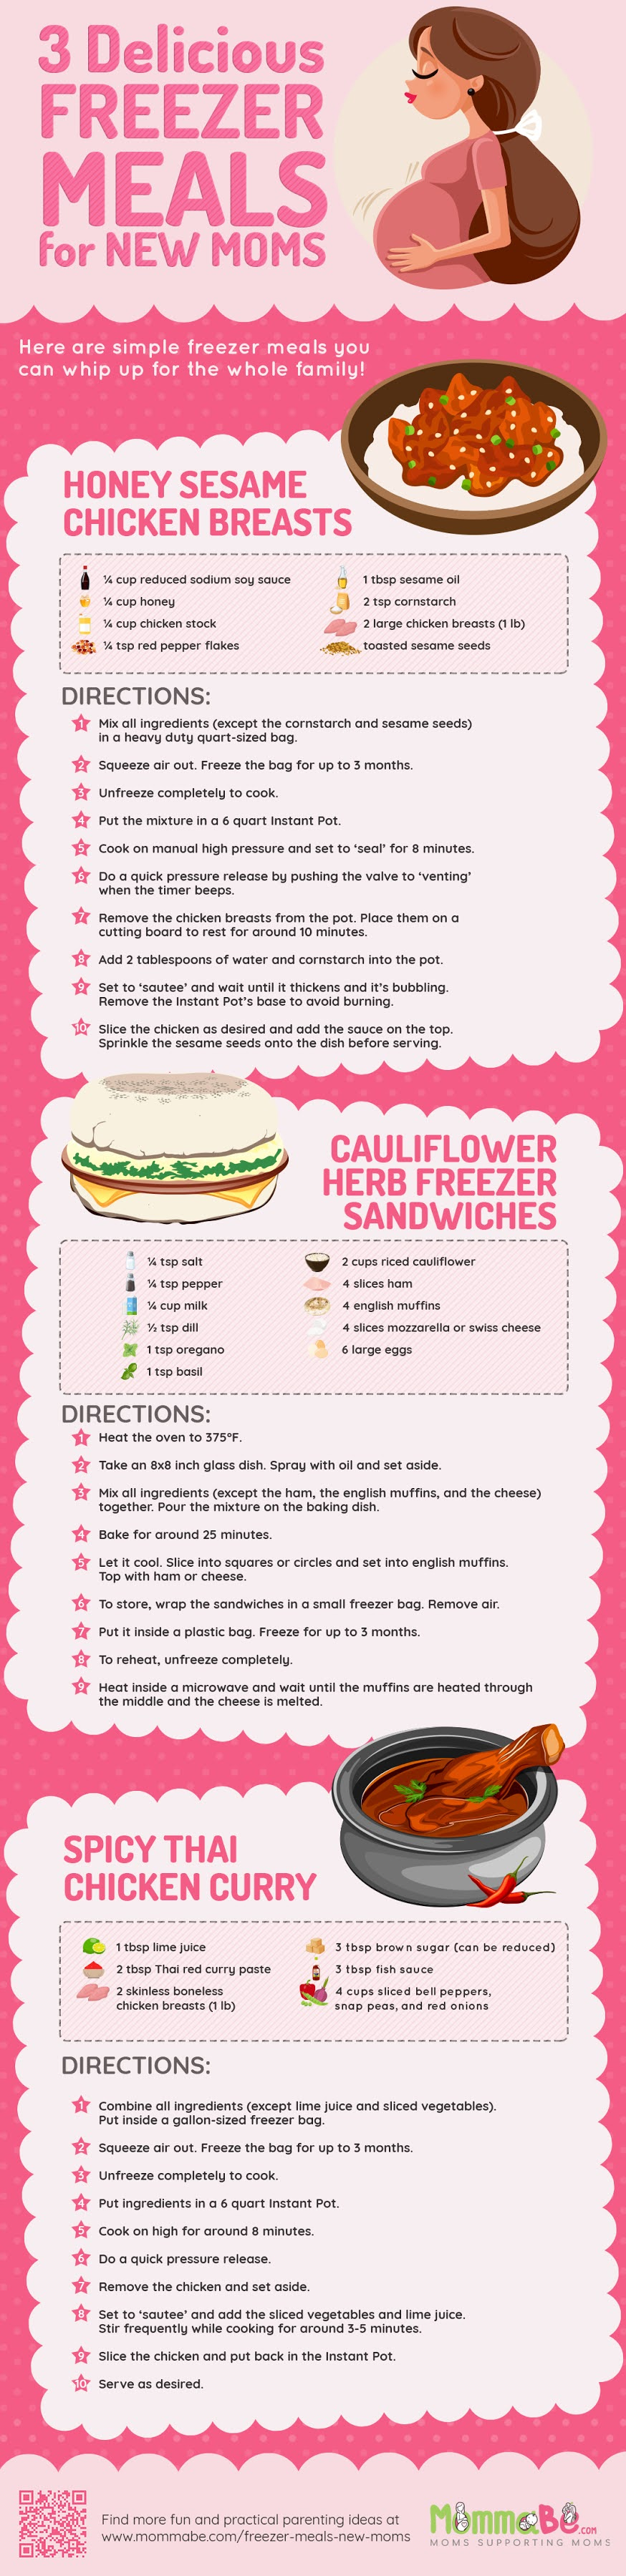 3 Delicious Freezer Meals For New Moms #infographic #Food #Health #infographics #New Moms #Freezer Meals #Meals